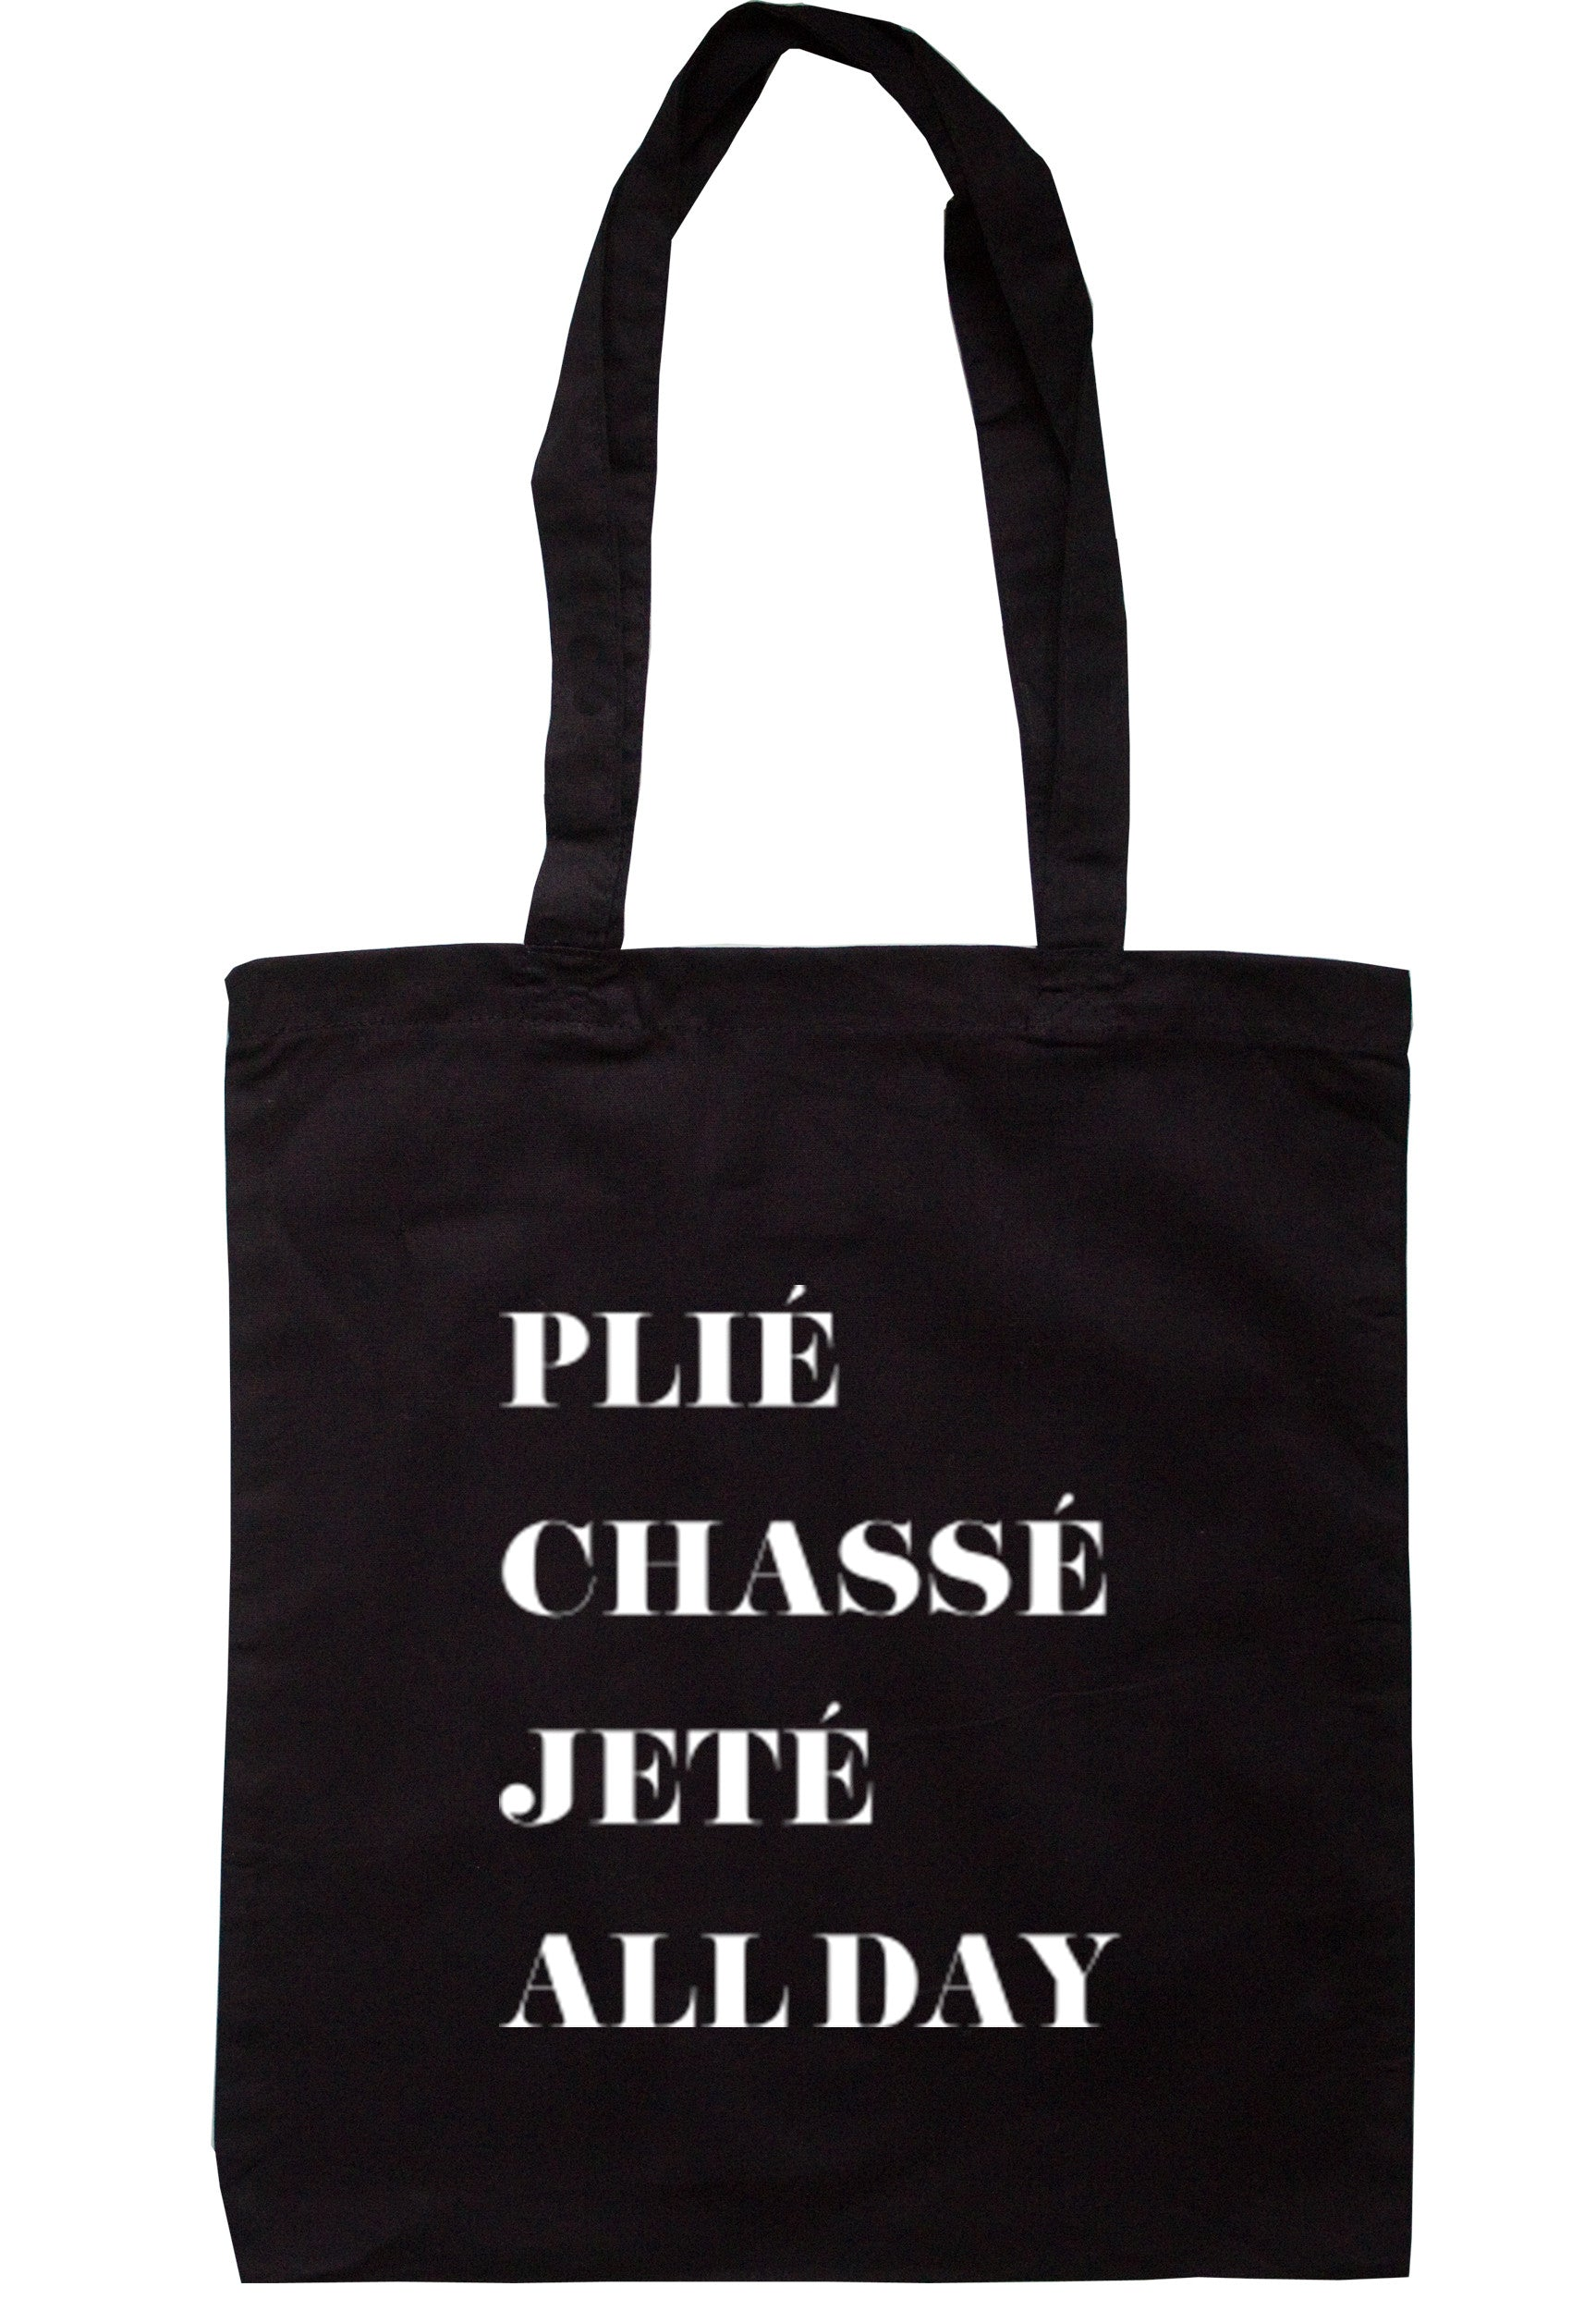 Plie Chasse Jete All Day Tote Bag TB0131 - Illustrated Identity Ltd.